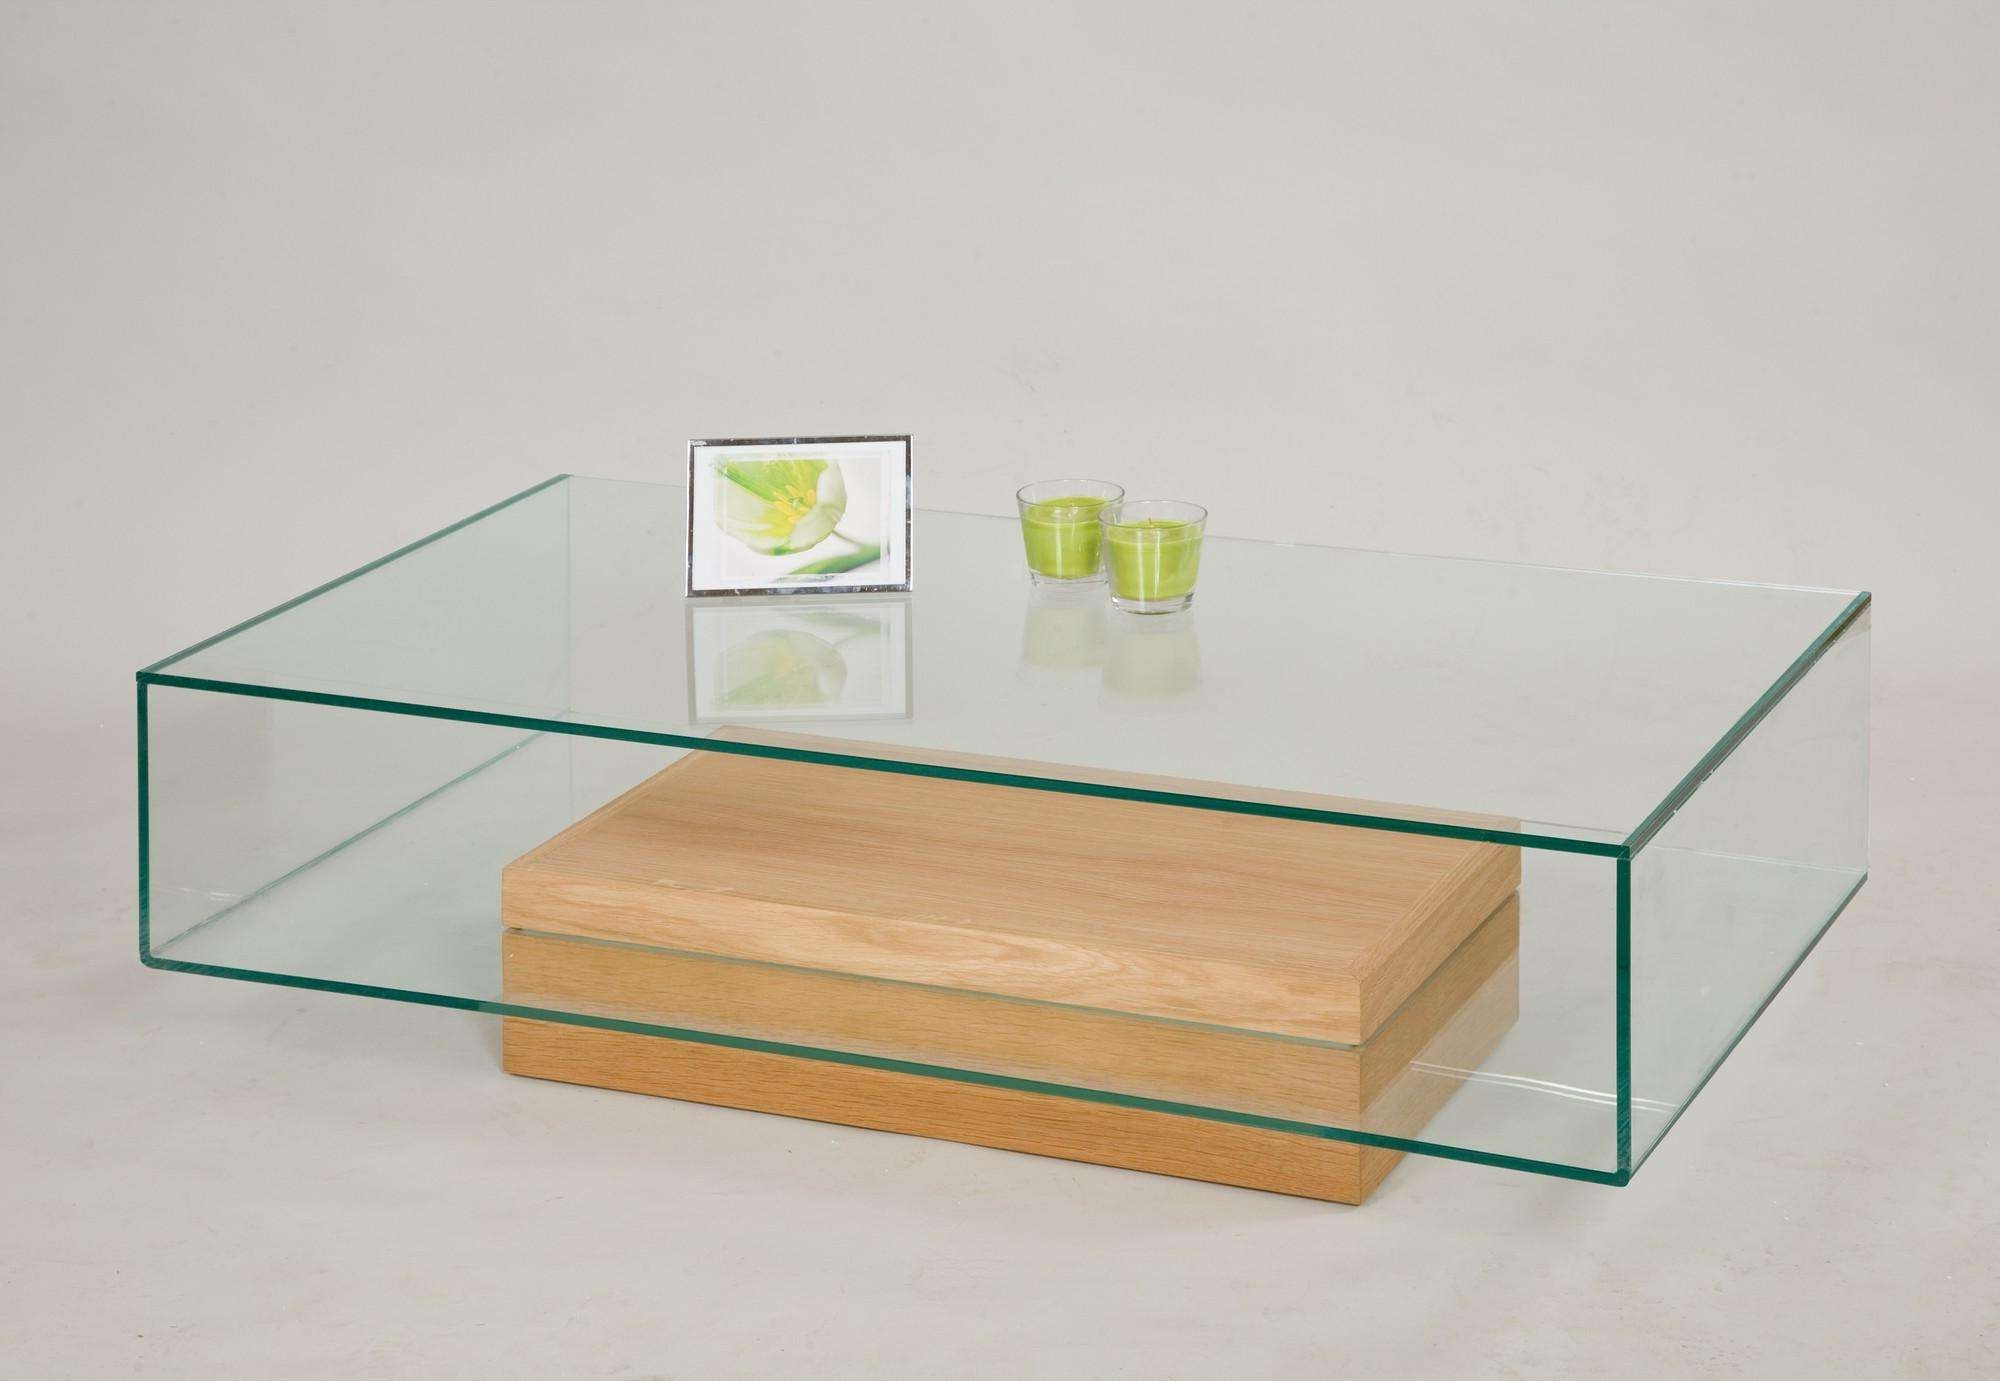 Famous Oak And Glass Coffee Table Inside Coffee Tables : Coffee Tables Glass Wooden Ikea Regissor Table (View 2 of 20)